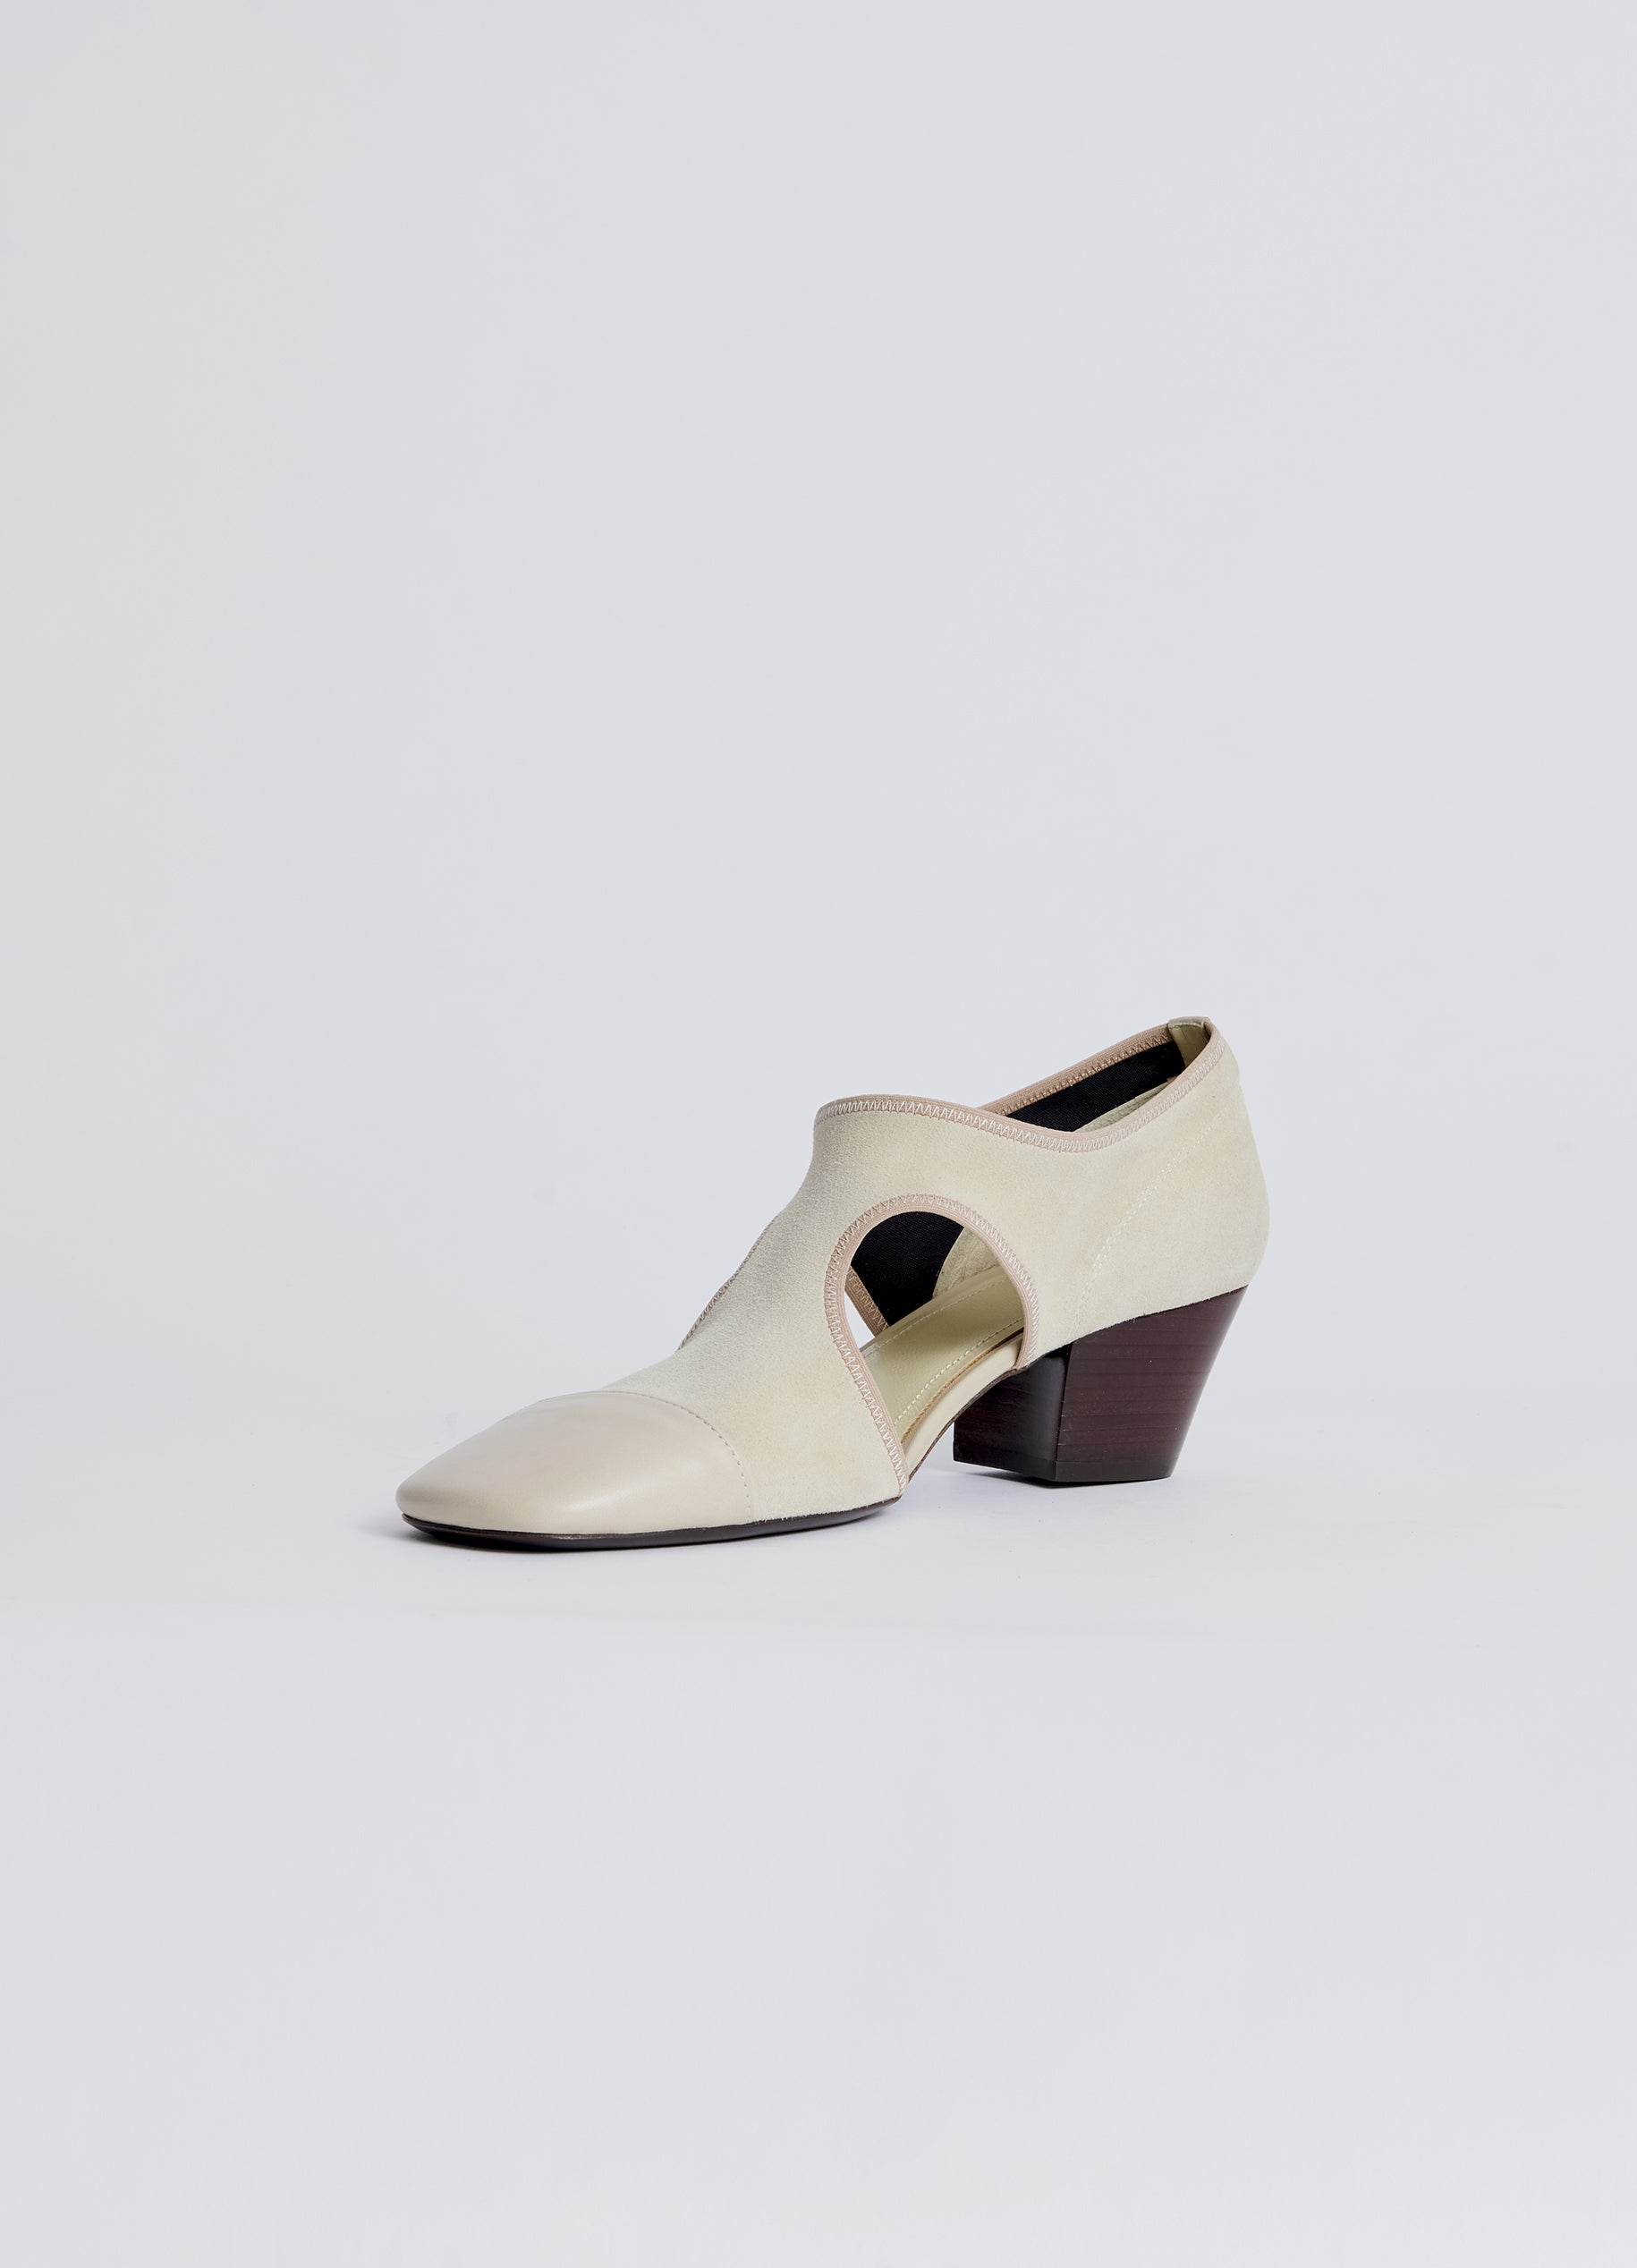 HEELED BALLERINA SHOES